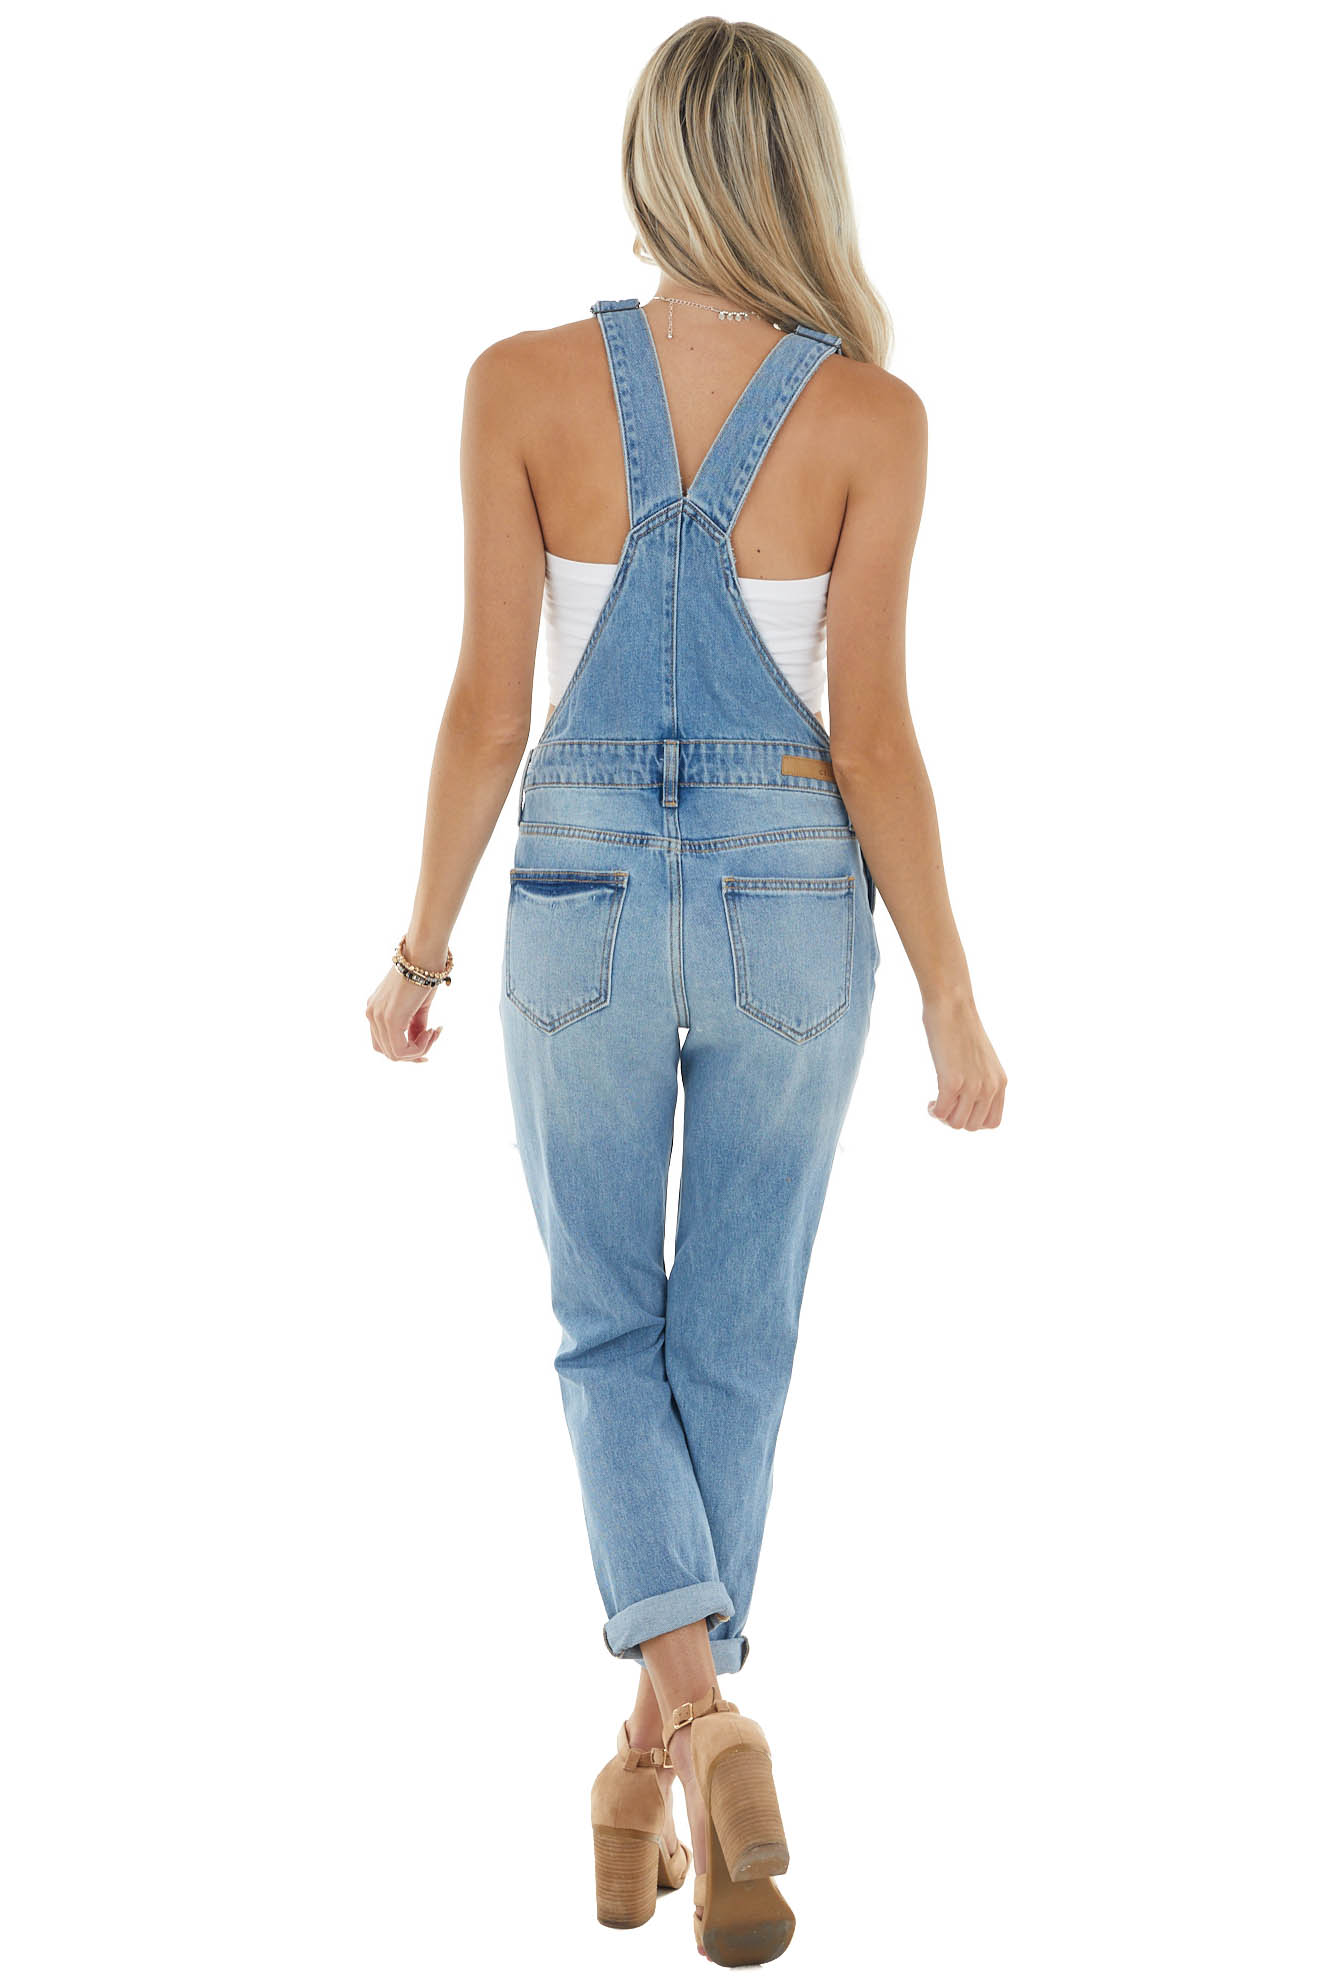 Medium Vintage Wash Heavily Distressed Overalls with Pockets